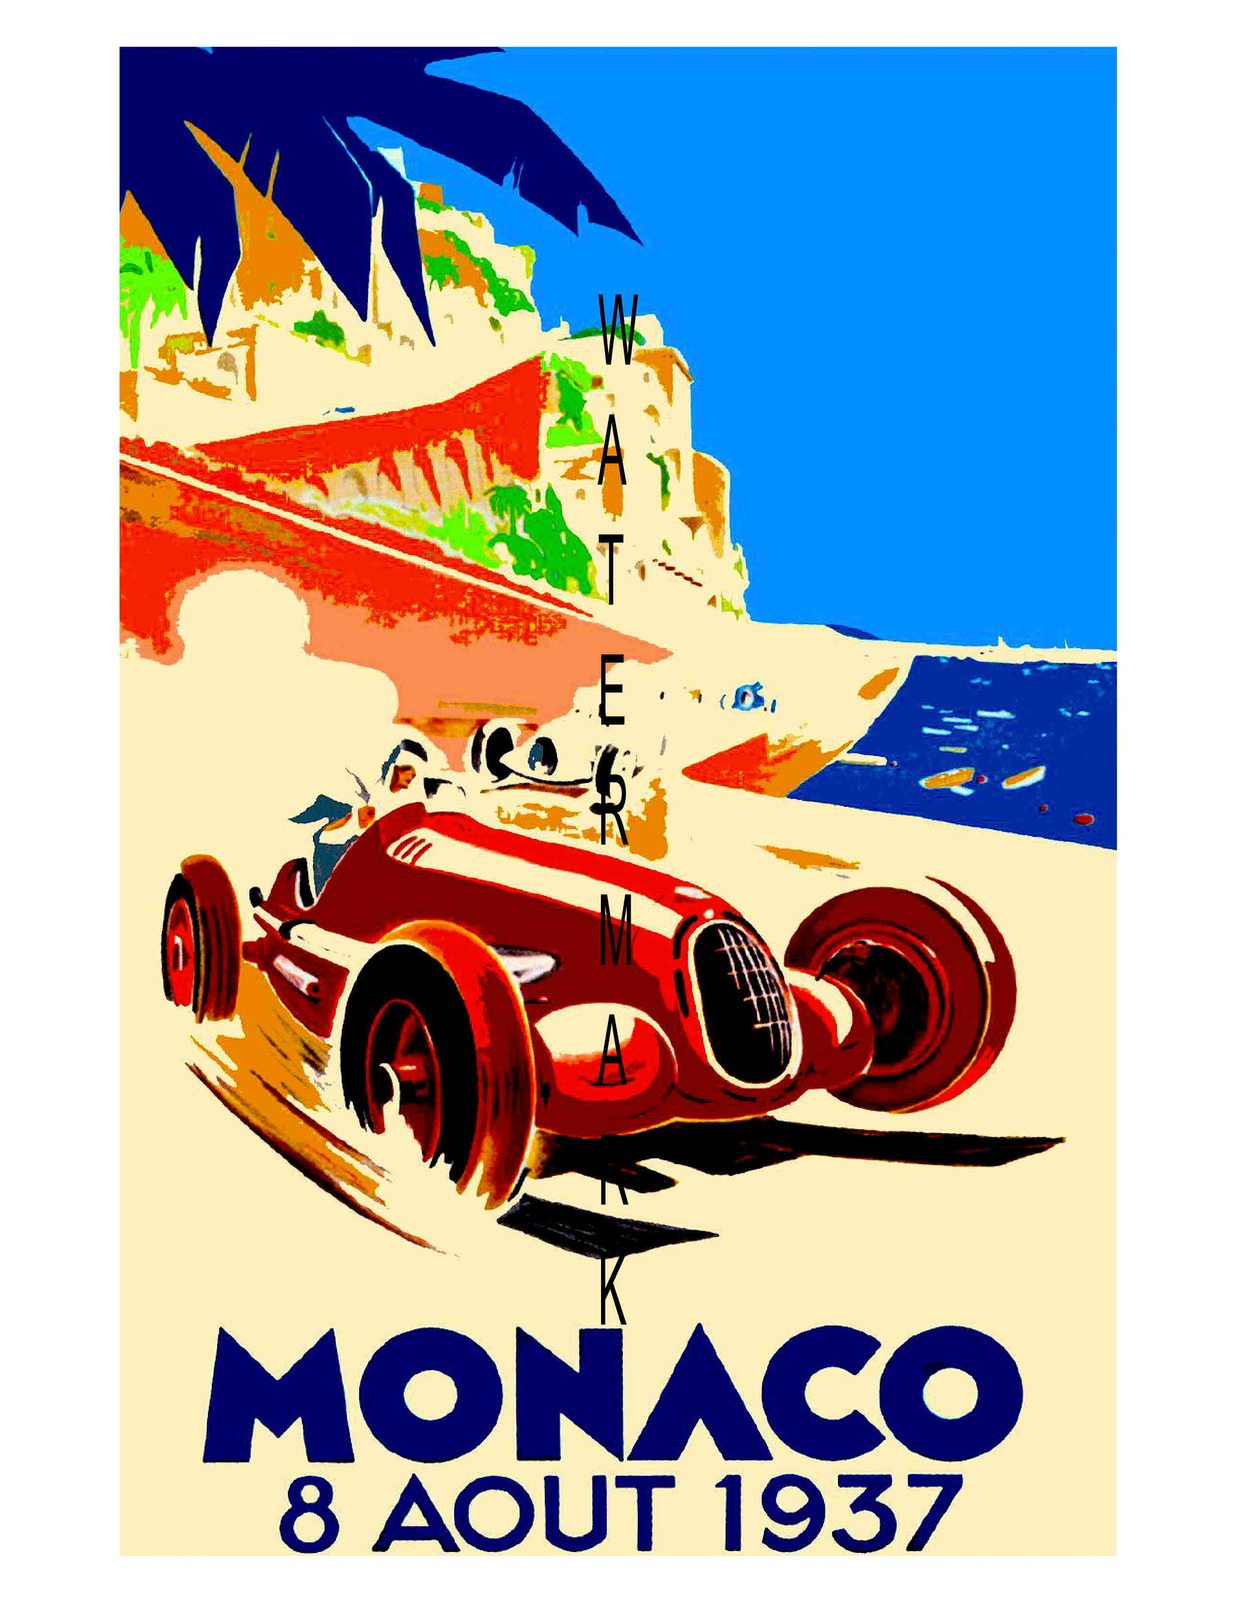 Monaco Vintage (1937) Grand Prix Auto Racing 13 x 10 in Adv. Giclee CANVAS Print